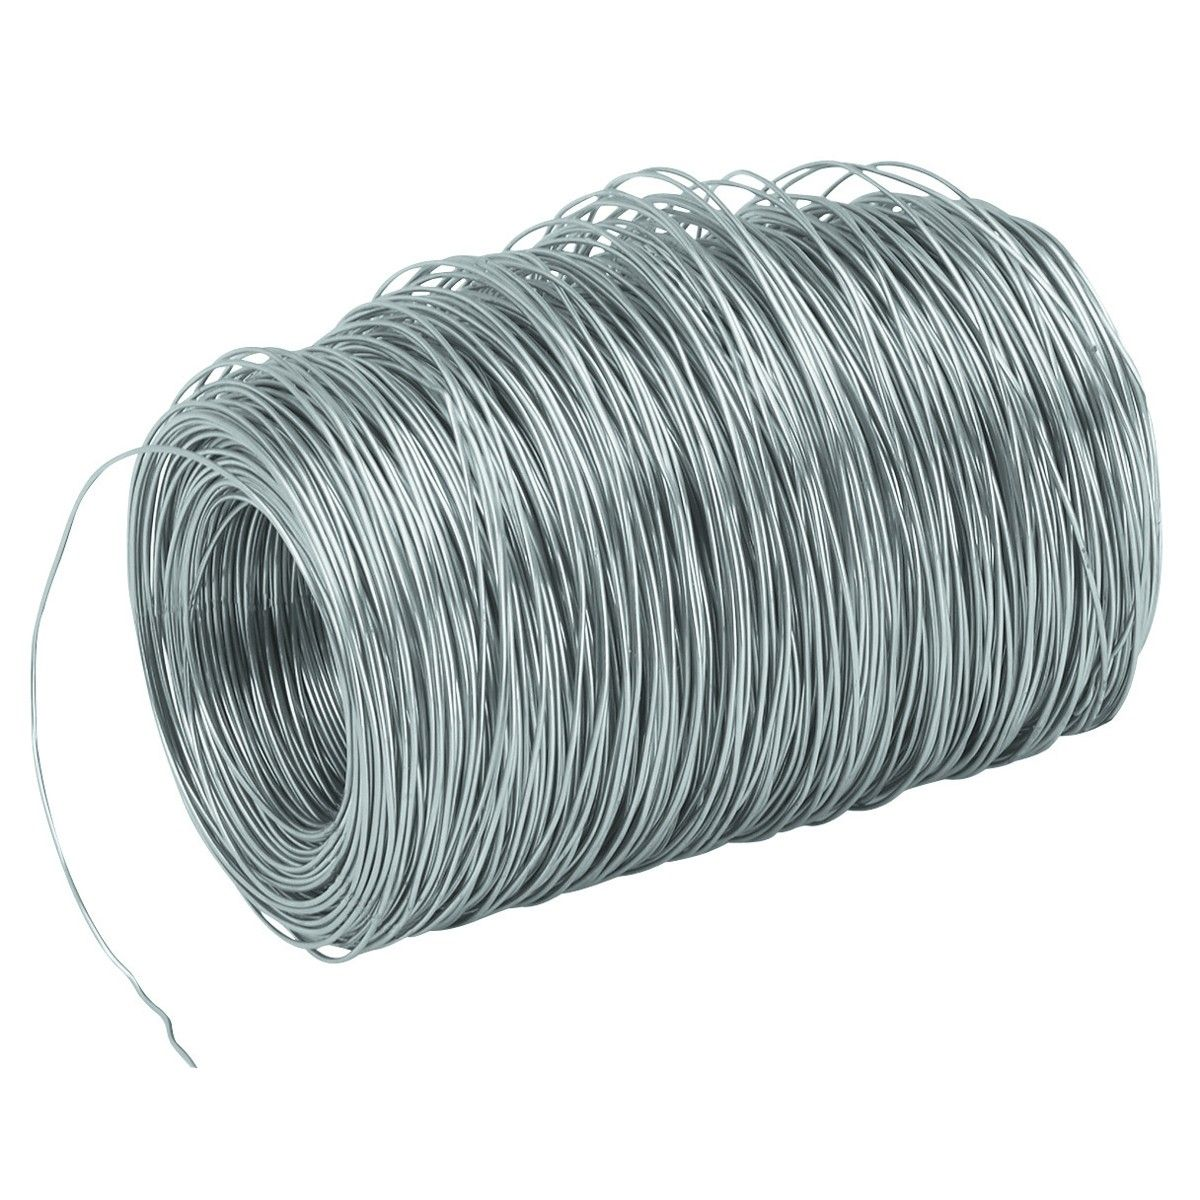 0 041 In Stainless Steel Lock Wire 1 00 Lb Coil Stainless Steel Wire Steel Rod Stainless Steel Sheet